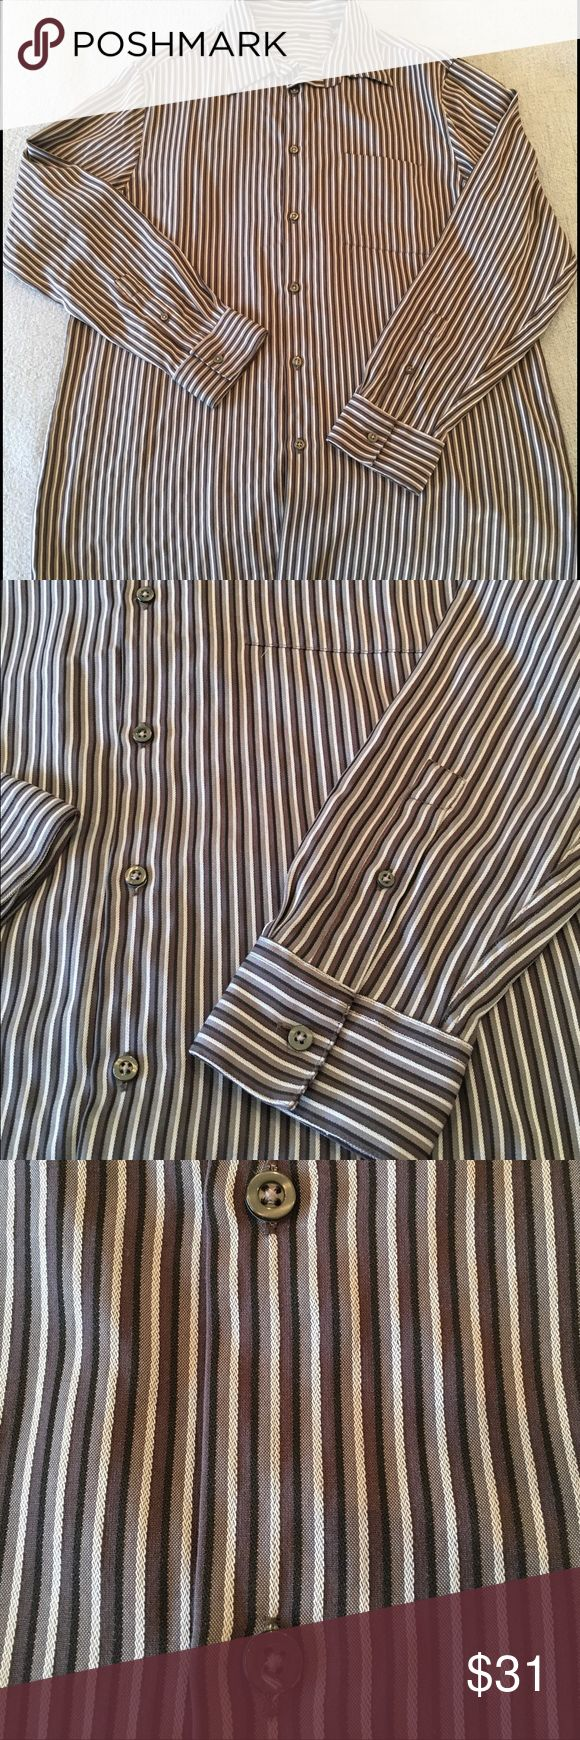 . Men's Shirt Alfani Brand, purchased at Macy's. Stepping up a casual look with jeans or nicer with khakis.   In very good used condition, no stains or rips. Smoke free and pet free home. Alfani Tops Button Down Shirts